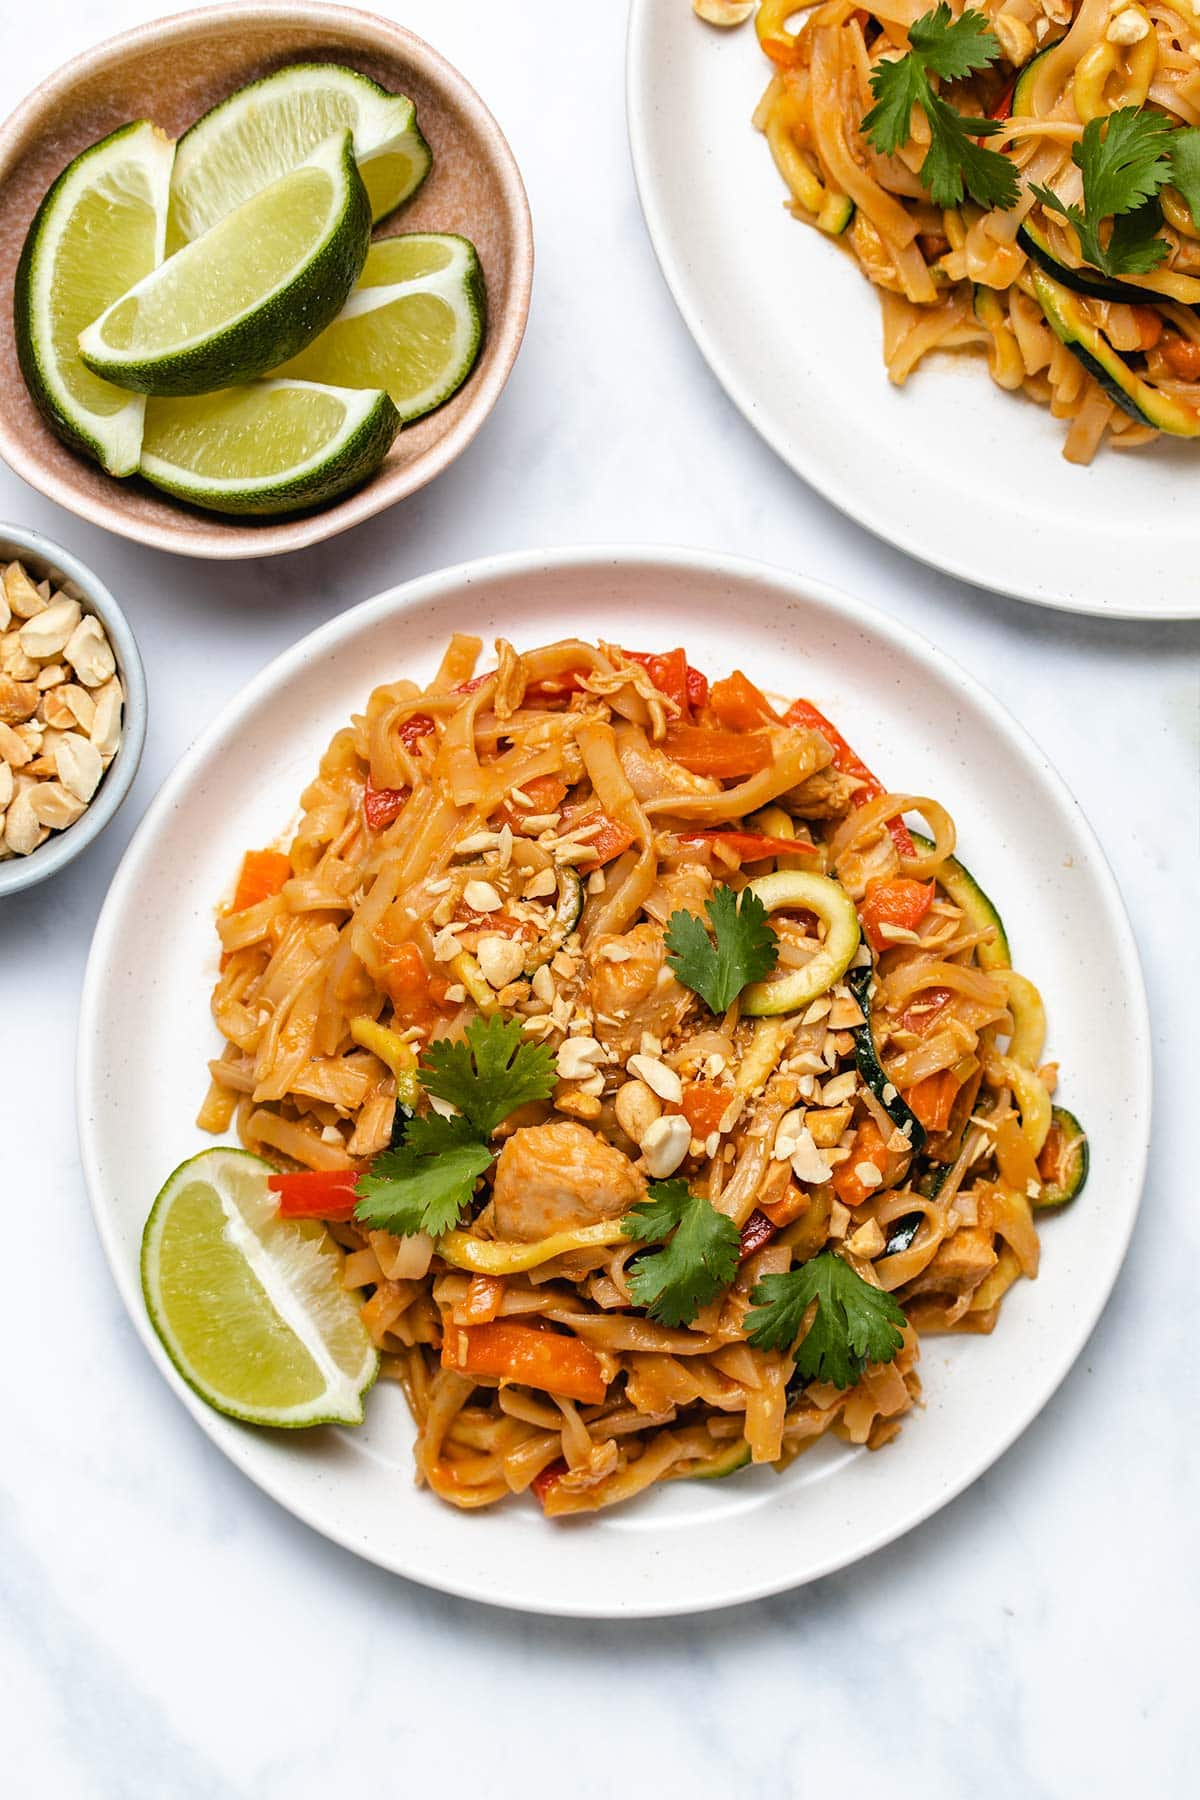 Instant Pot Chicken Pad Thai on a white plate garnished with cilantro and chopped peanut, next to small bowls of garnish and a second plate